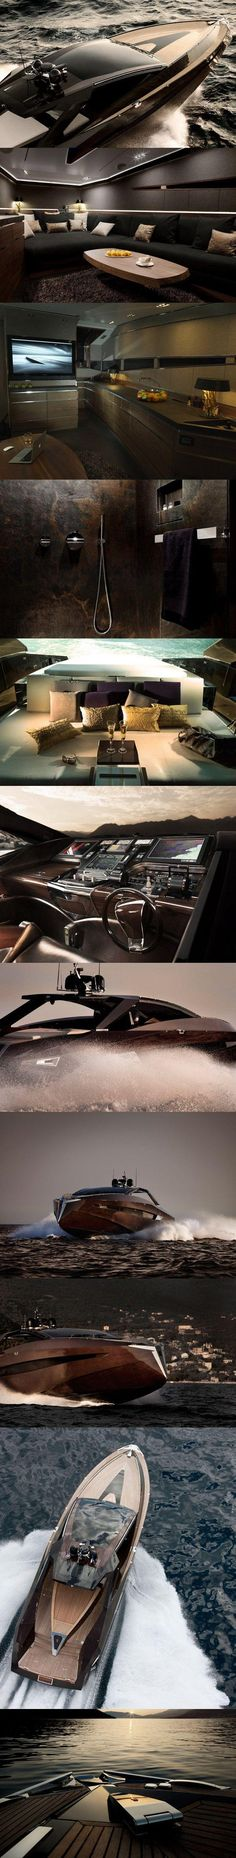 Art of Kinetik Hedonist Yacht; my next boat. Yacht Design, Super Yachts, Bateau Yacht, Luxury Sailing Yachts, R1200r, Yacht Boat, Sail Away, Private Jet, Private Yacht